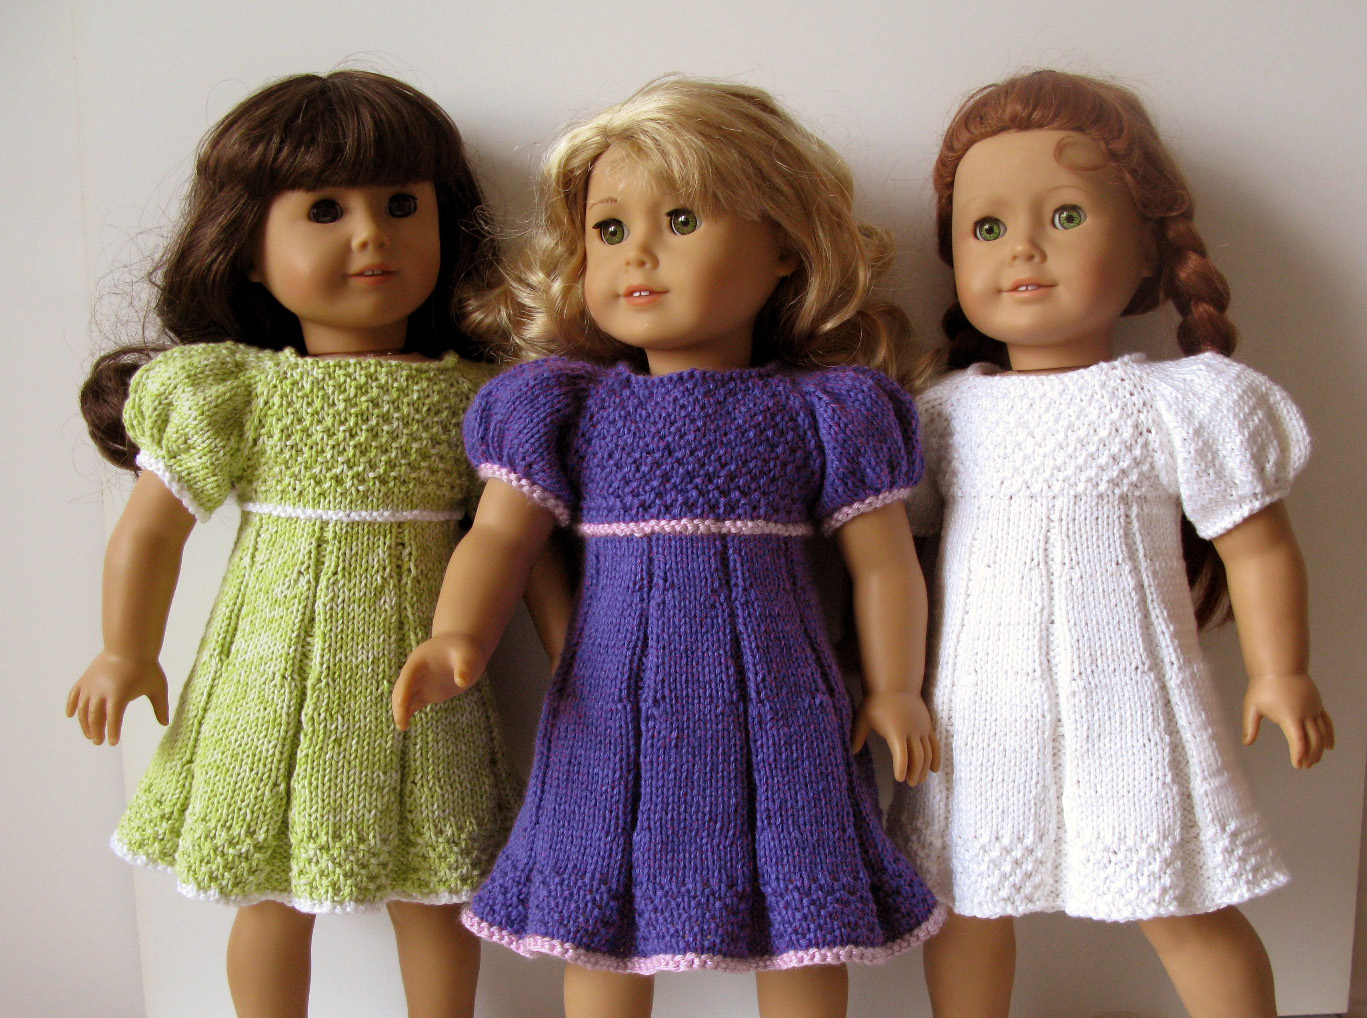 Knitting Summer Dress : Pleated summer dress knitting pattern knit n play